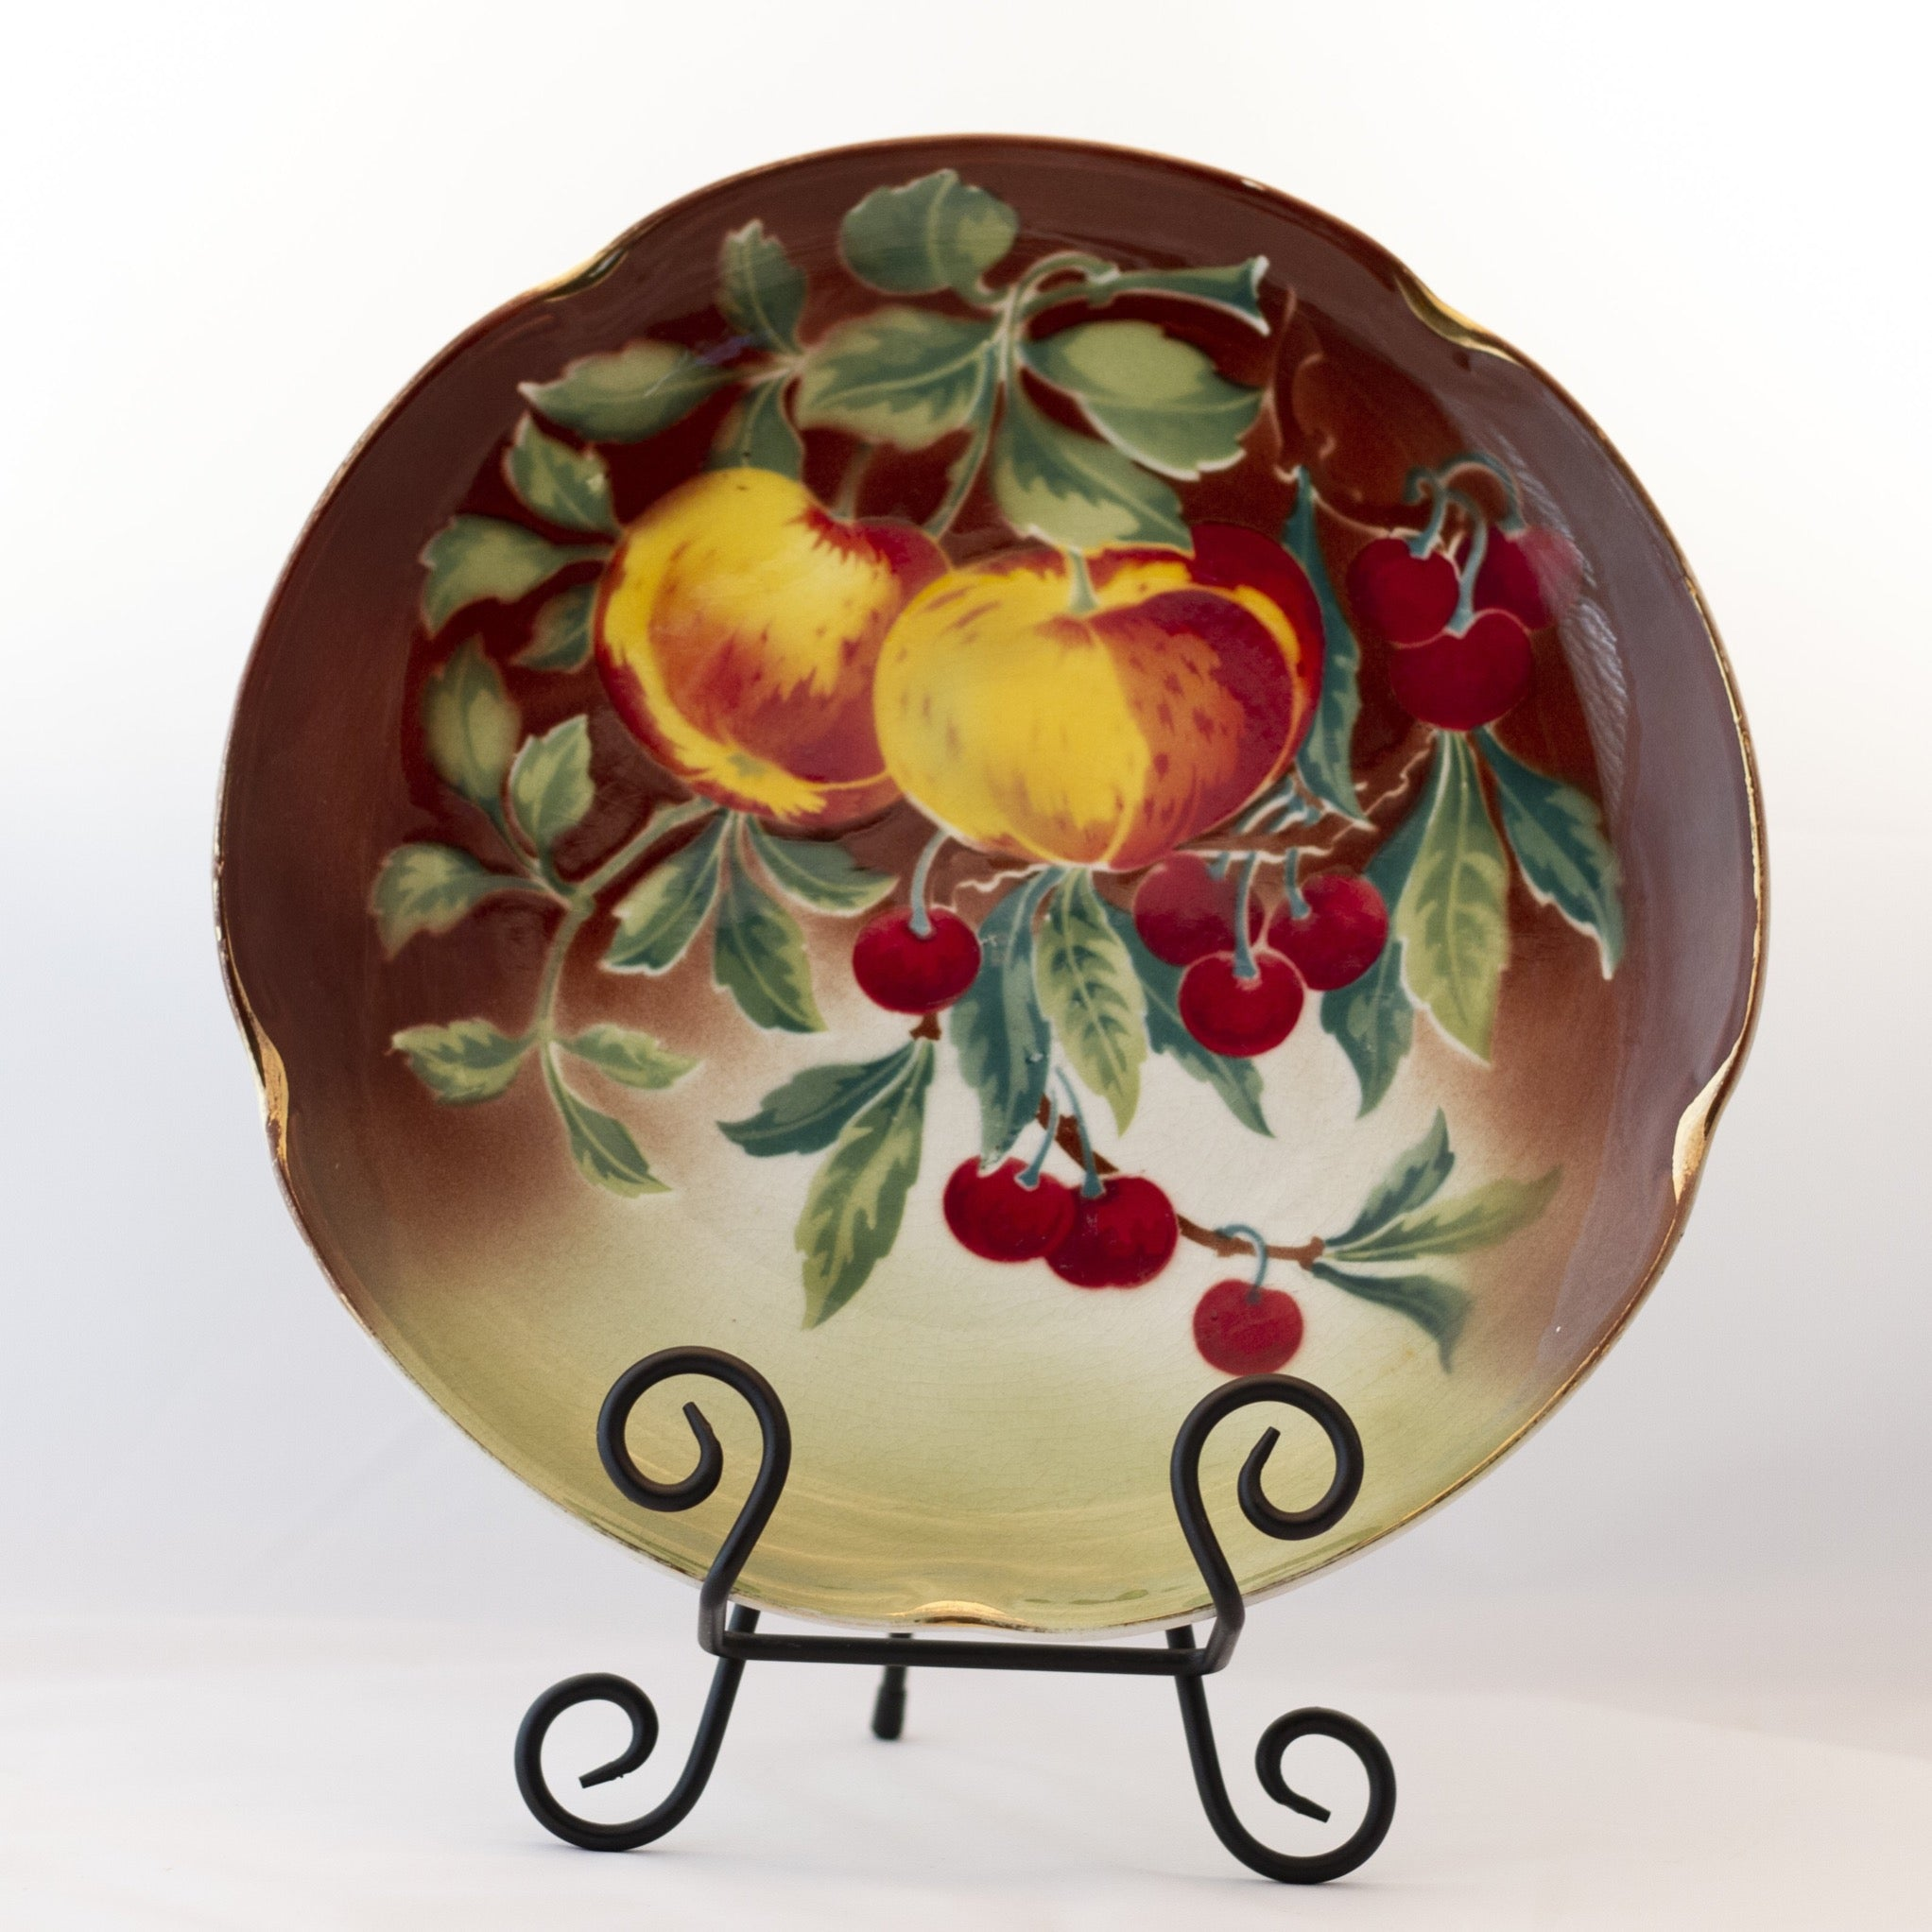 "K & G LUNÉVILLE FRENCH FAIENCE PLATTER HAND PAINTED APPLES AND PEARS 11 ¼"" Gold Gilt Rim Circa 1890"